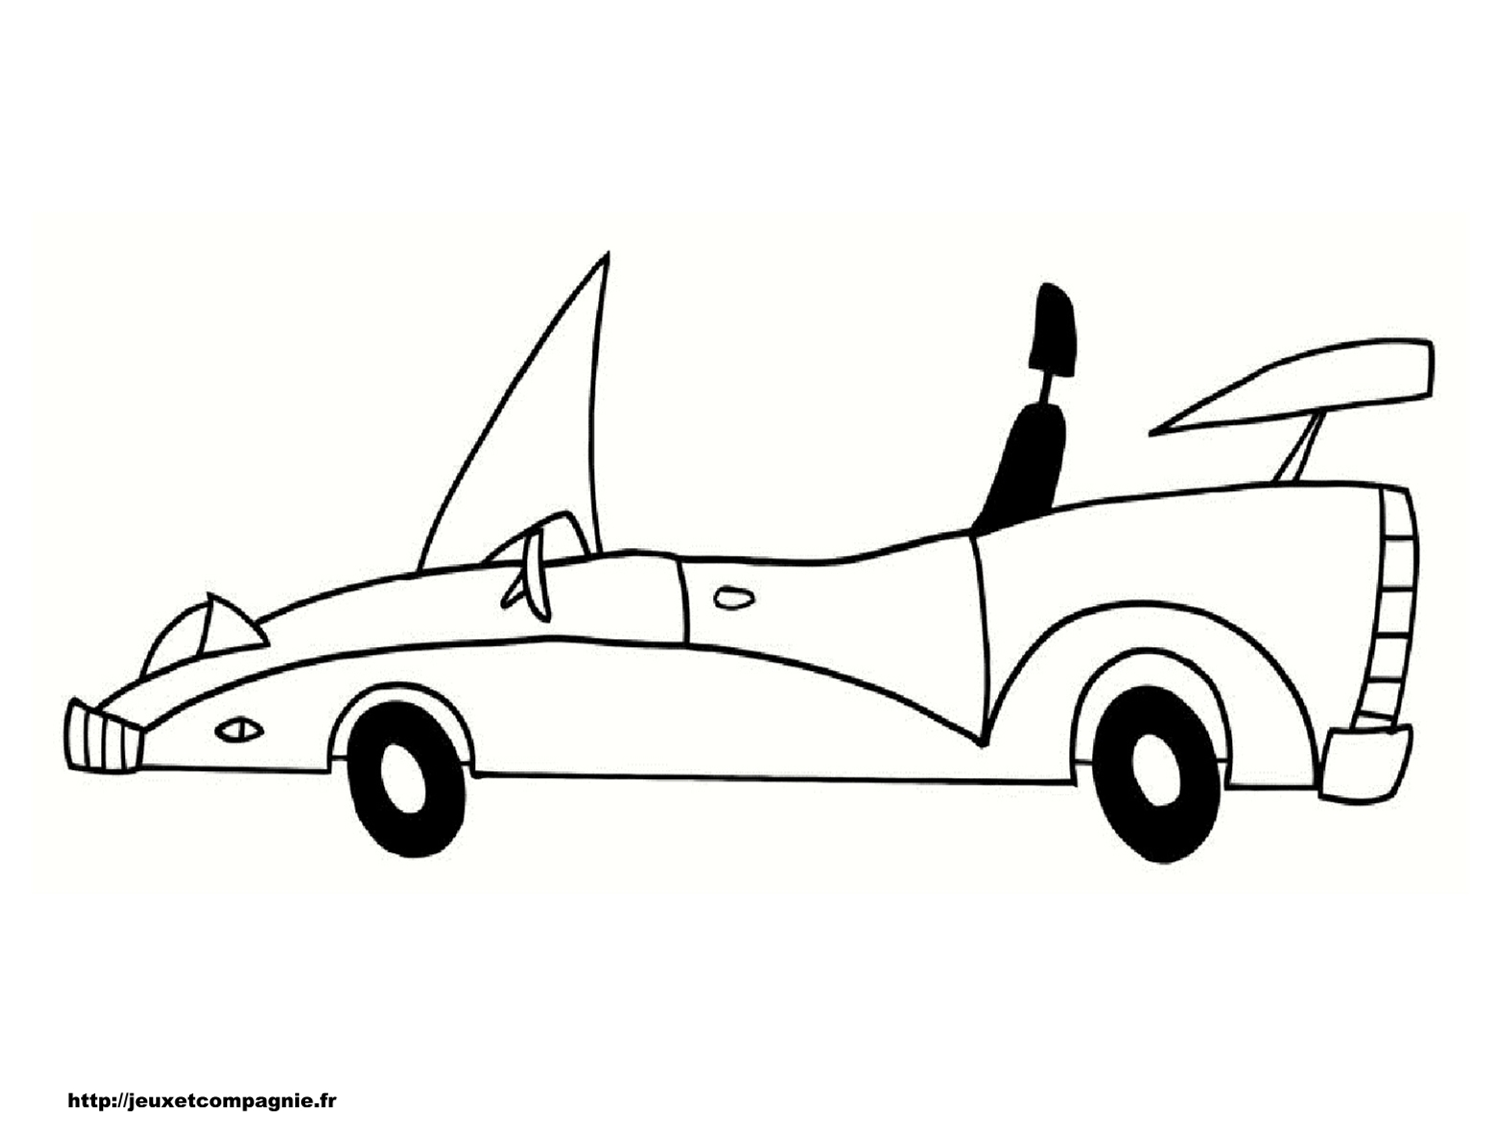 Coloriage Clown Voiture.Coloriages De Vehicules